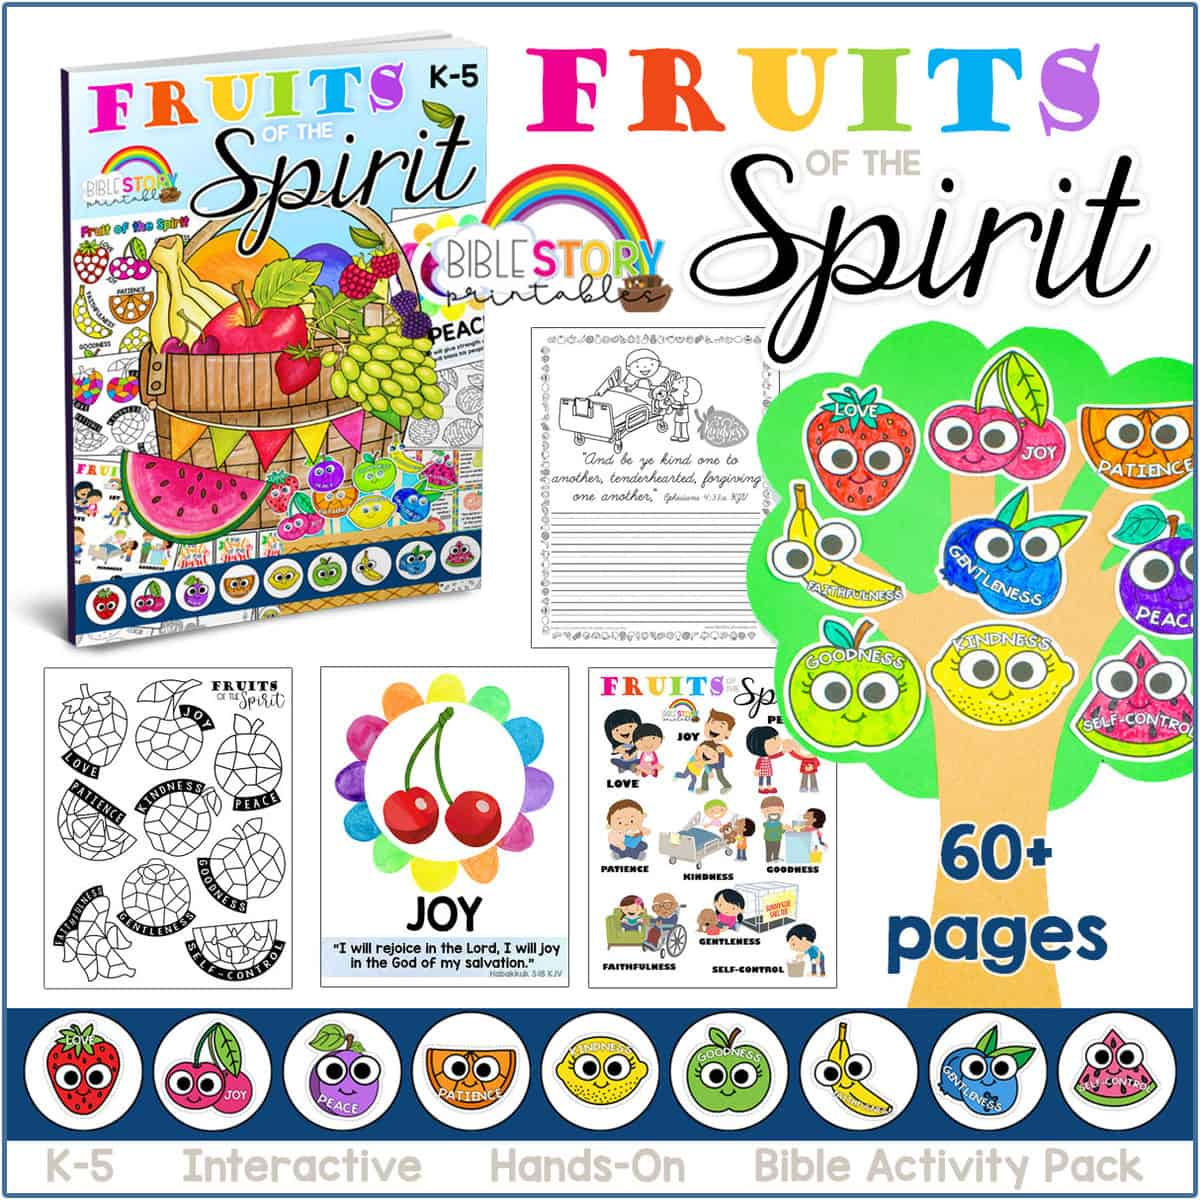 Fruitofthespiritworksheets